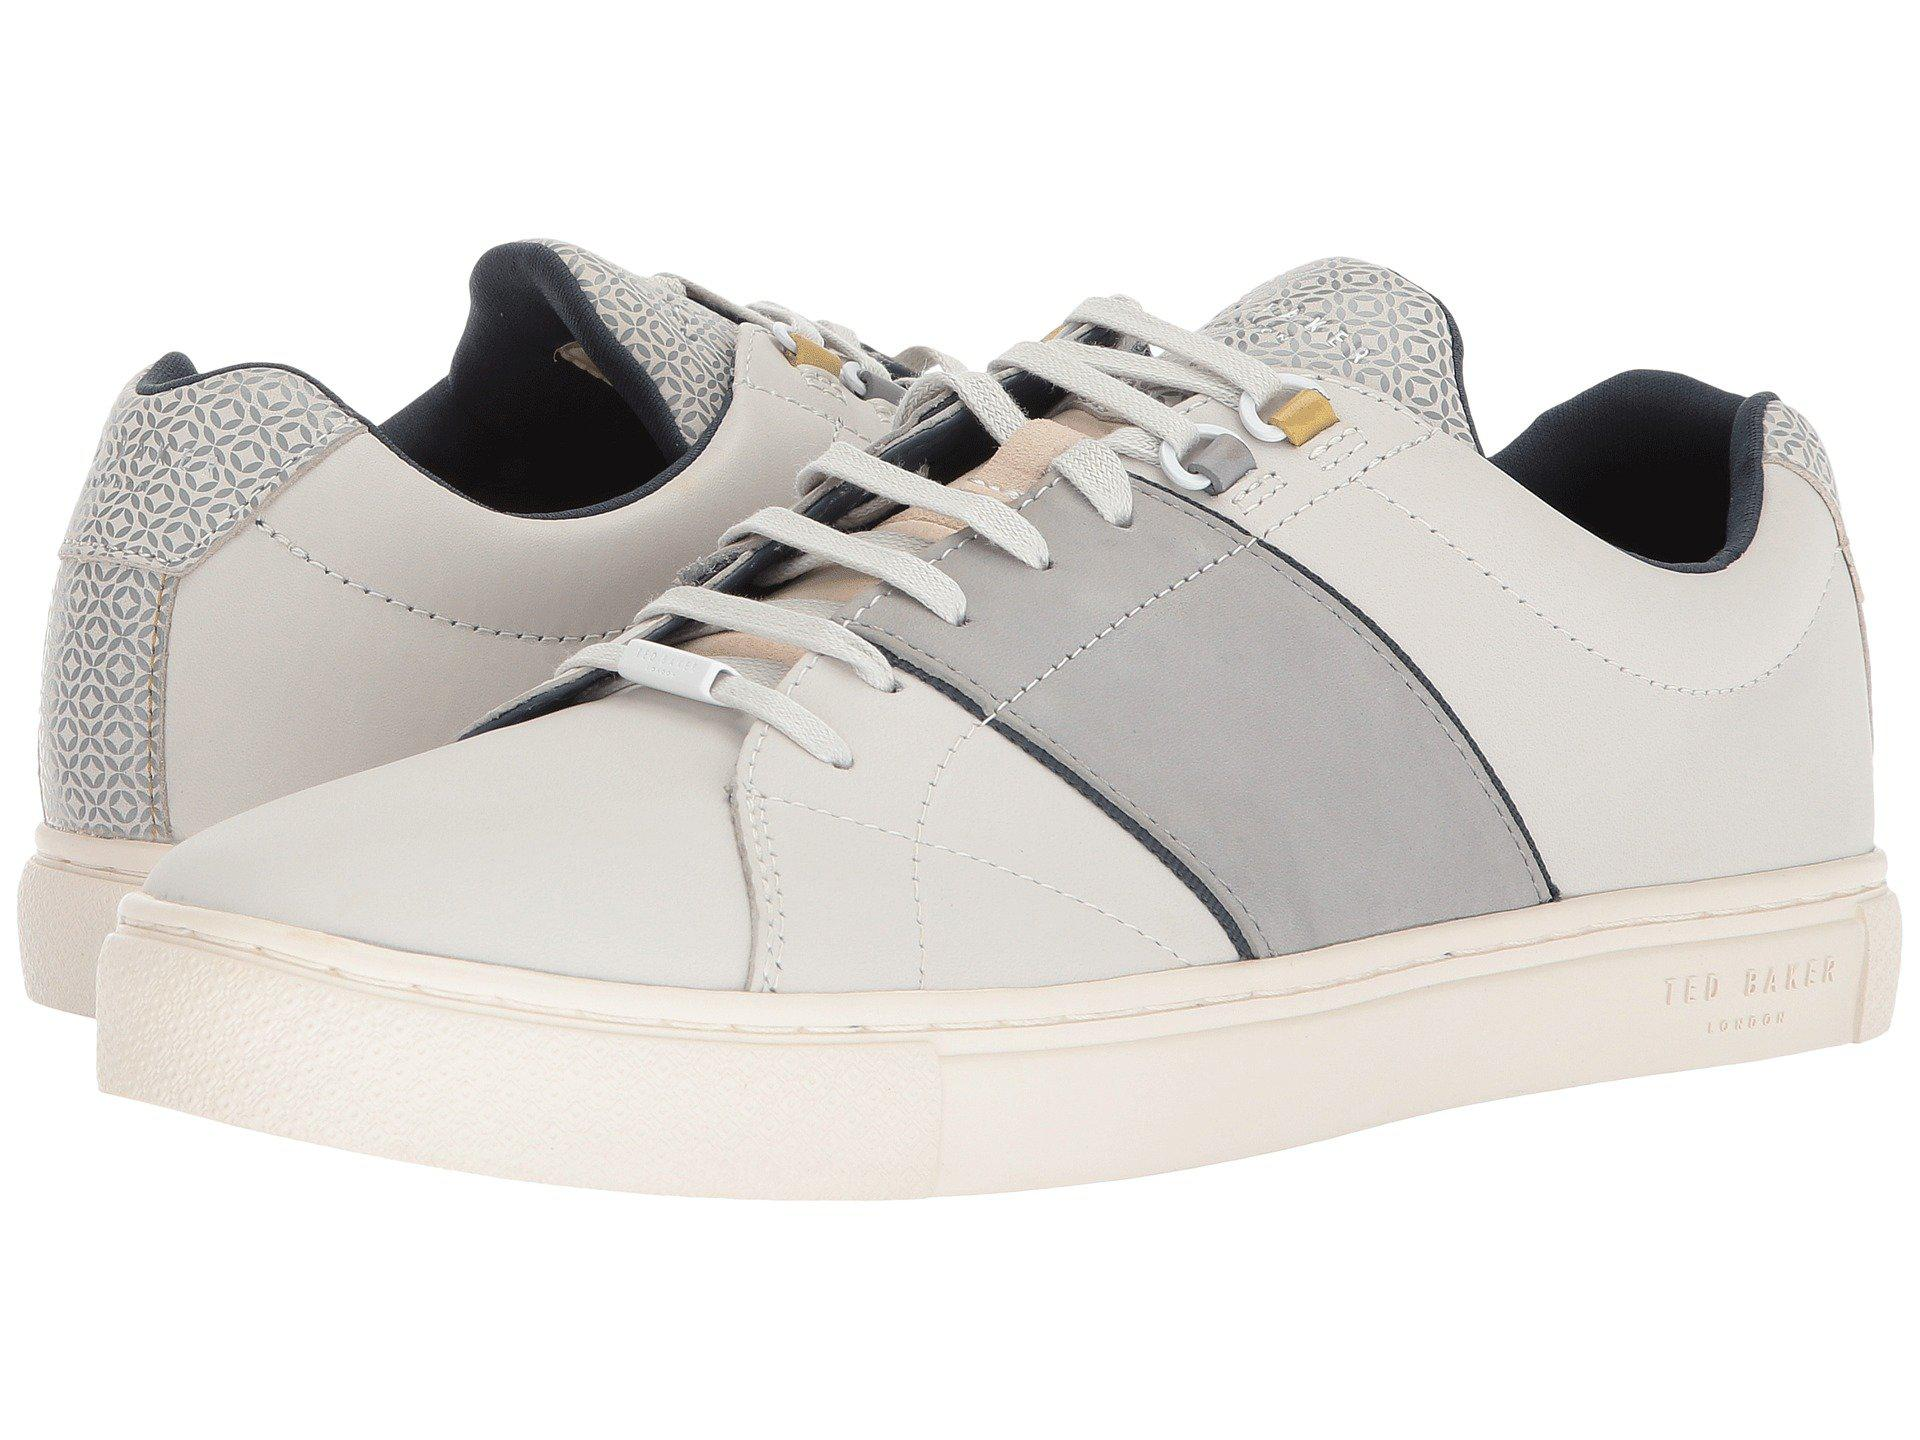 00ad5eb114a3 Lyst - Ted Baker Quana in White for Men - Save 70%